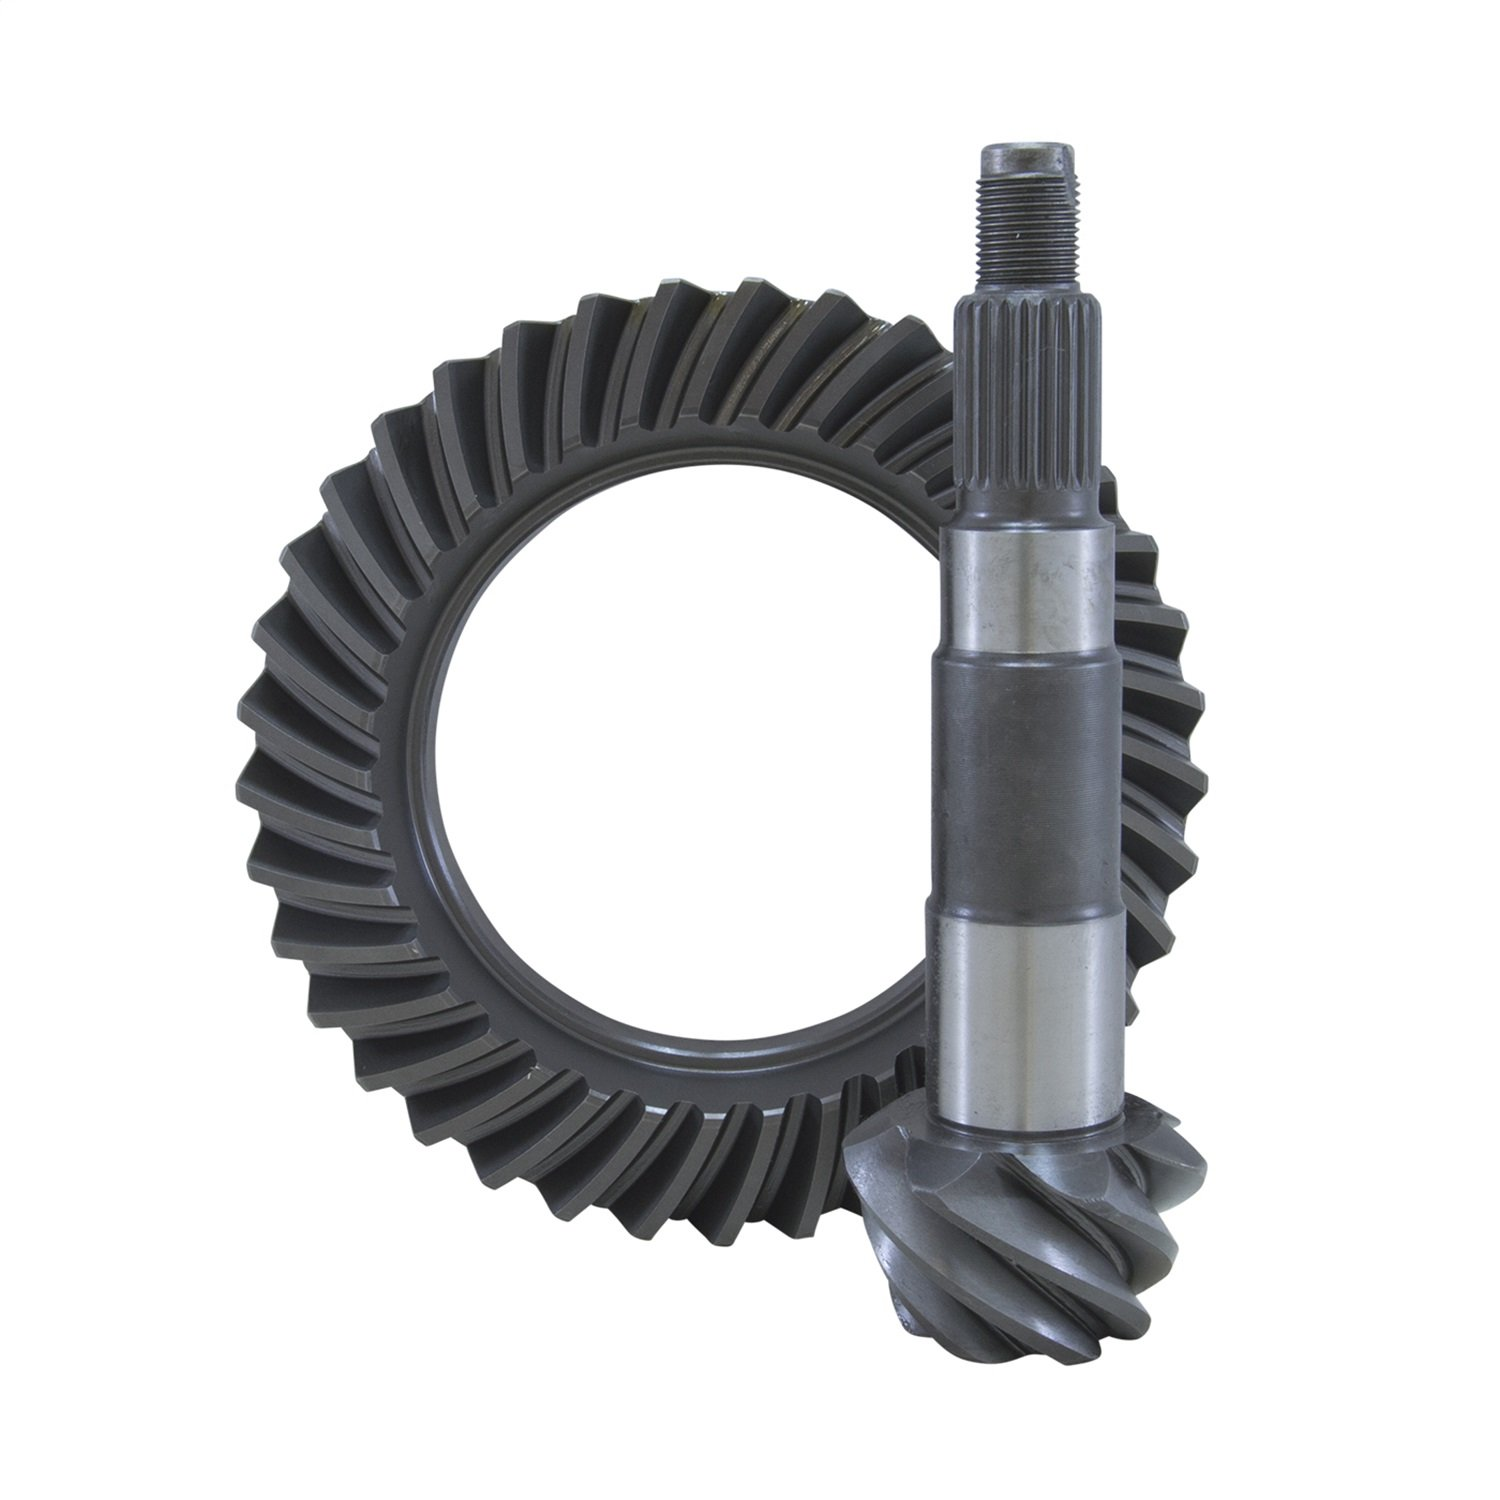 Yukon YG T7.5-488 High Performance Ring and Pinion Gear Set for Toyota 7.5 Differential